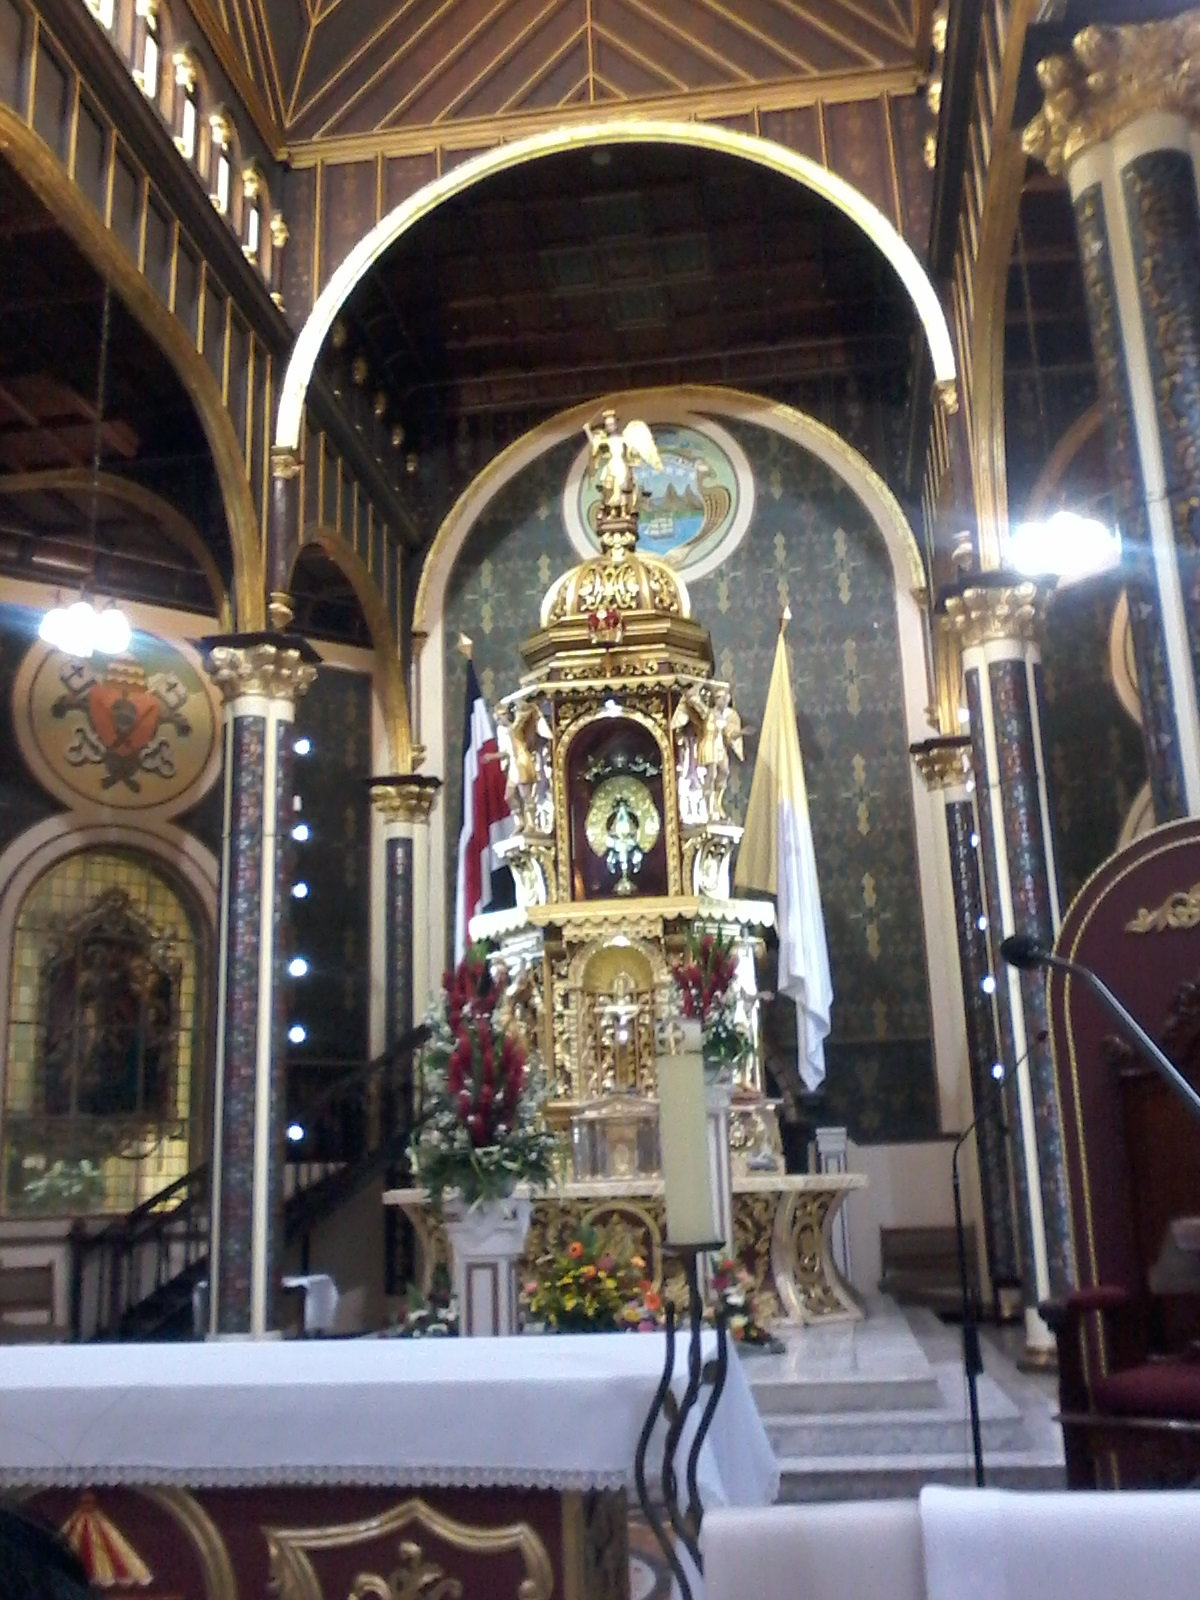 I found a new interest in religious decor when I went to Cartago and saw this towering golden statue and alter of the Virgin de Los Angeles in La Iglesia de la Virgin de Los Angeles